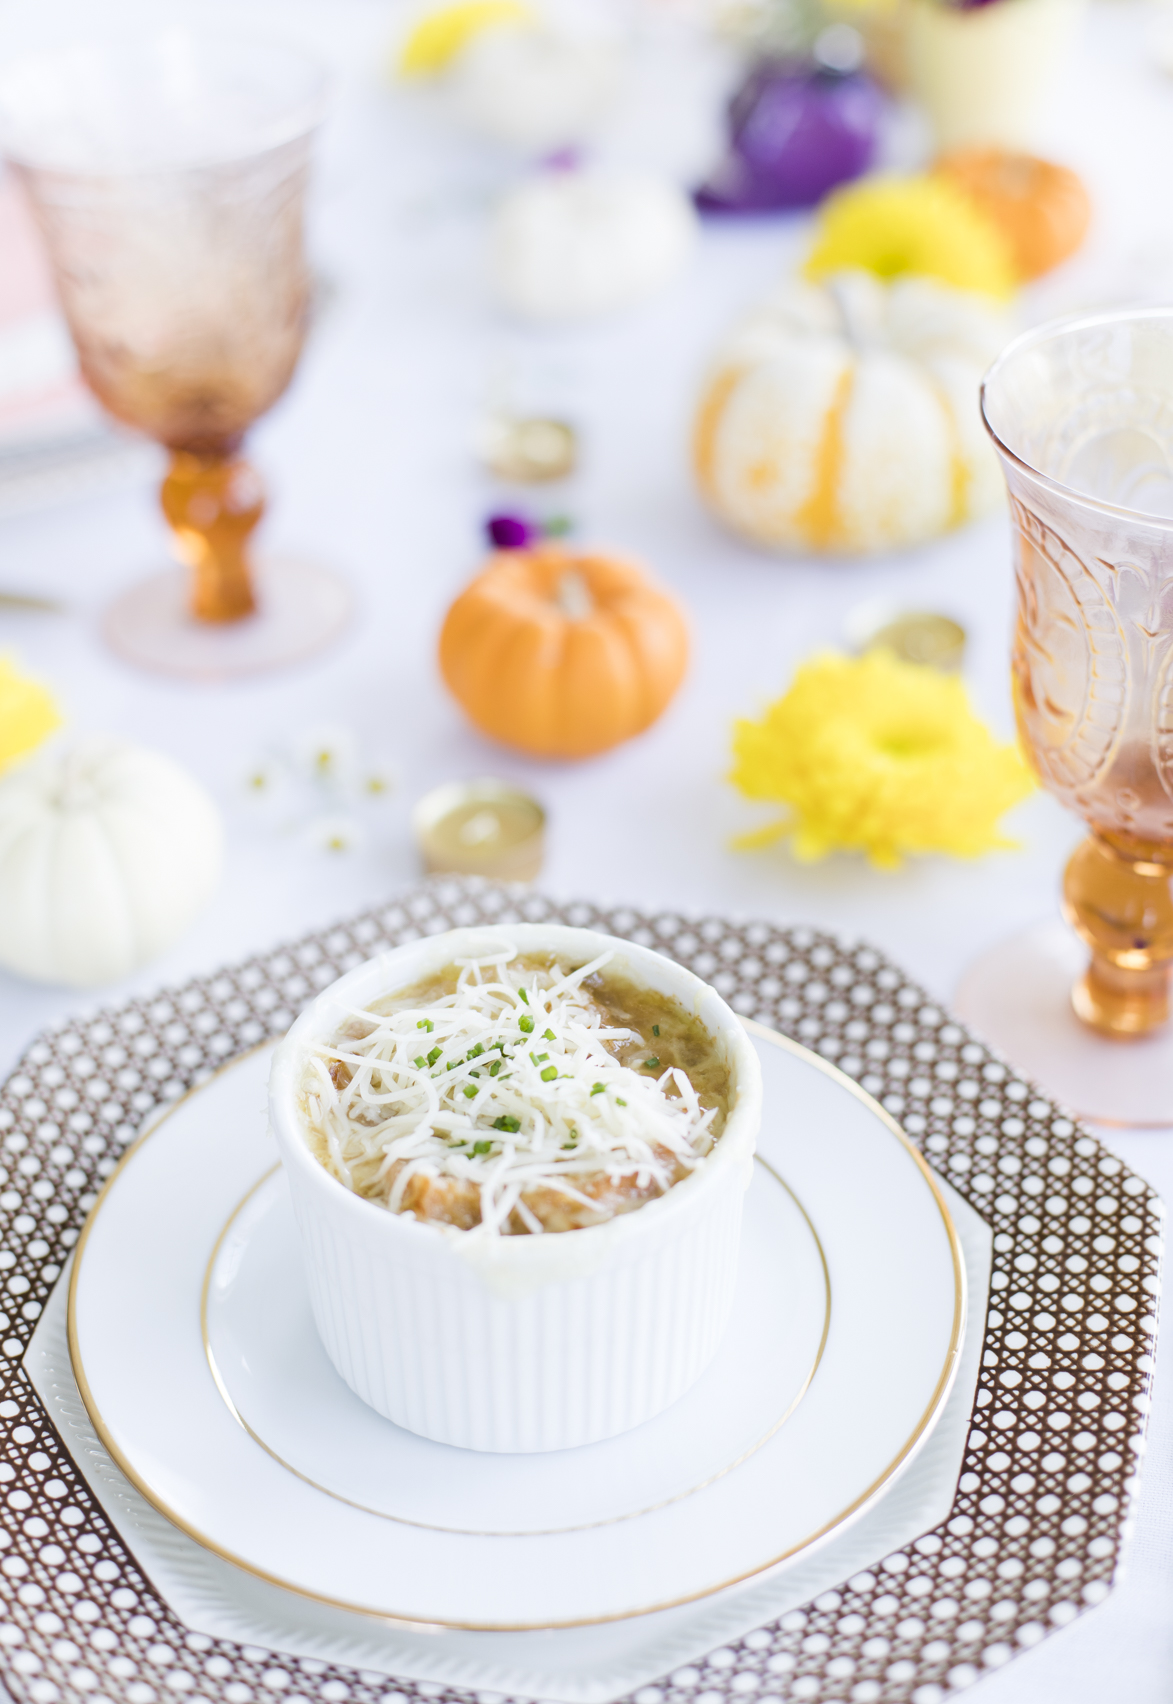 French Onion Soup Recipes with Sargento Swiss Cheese